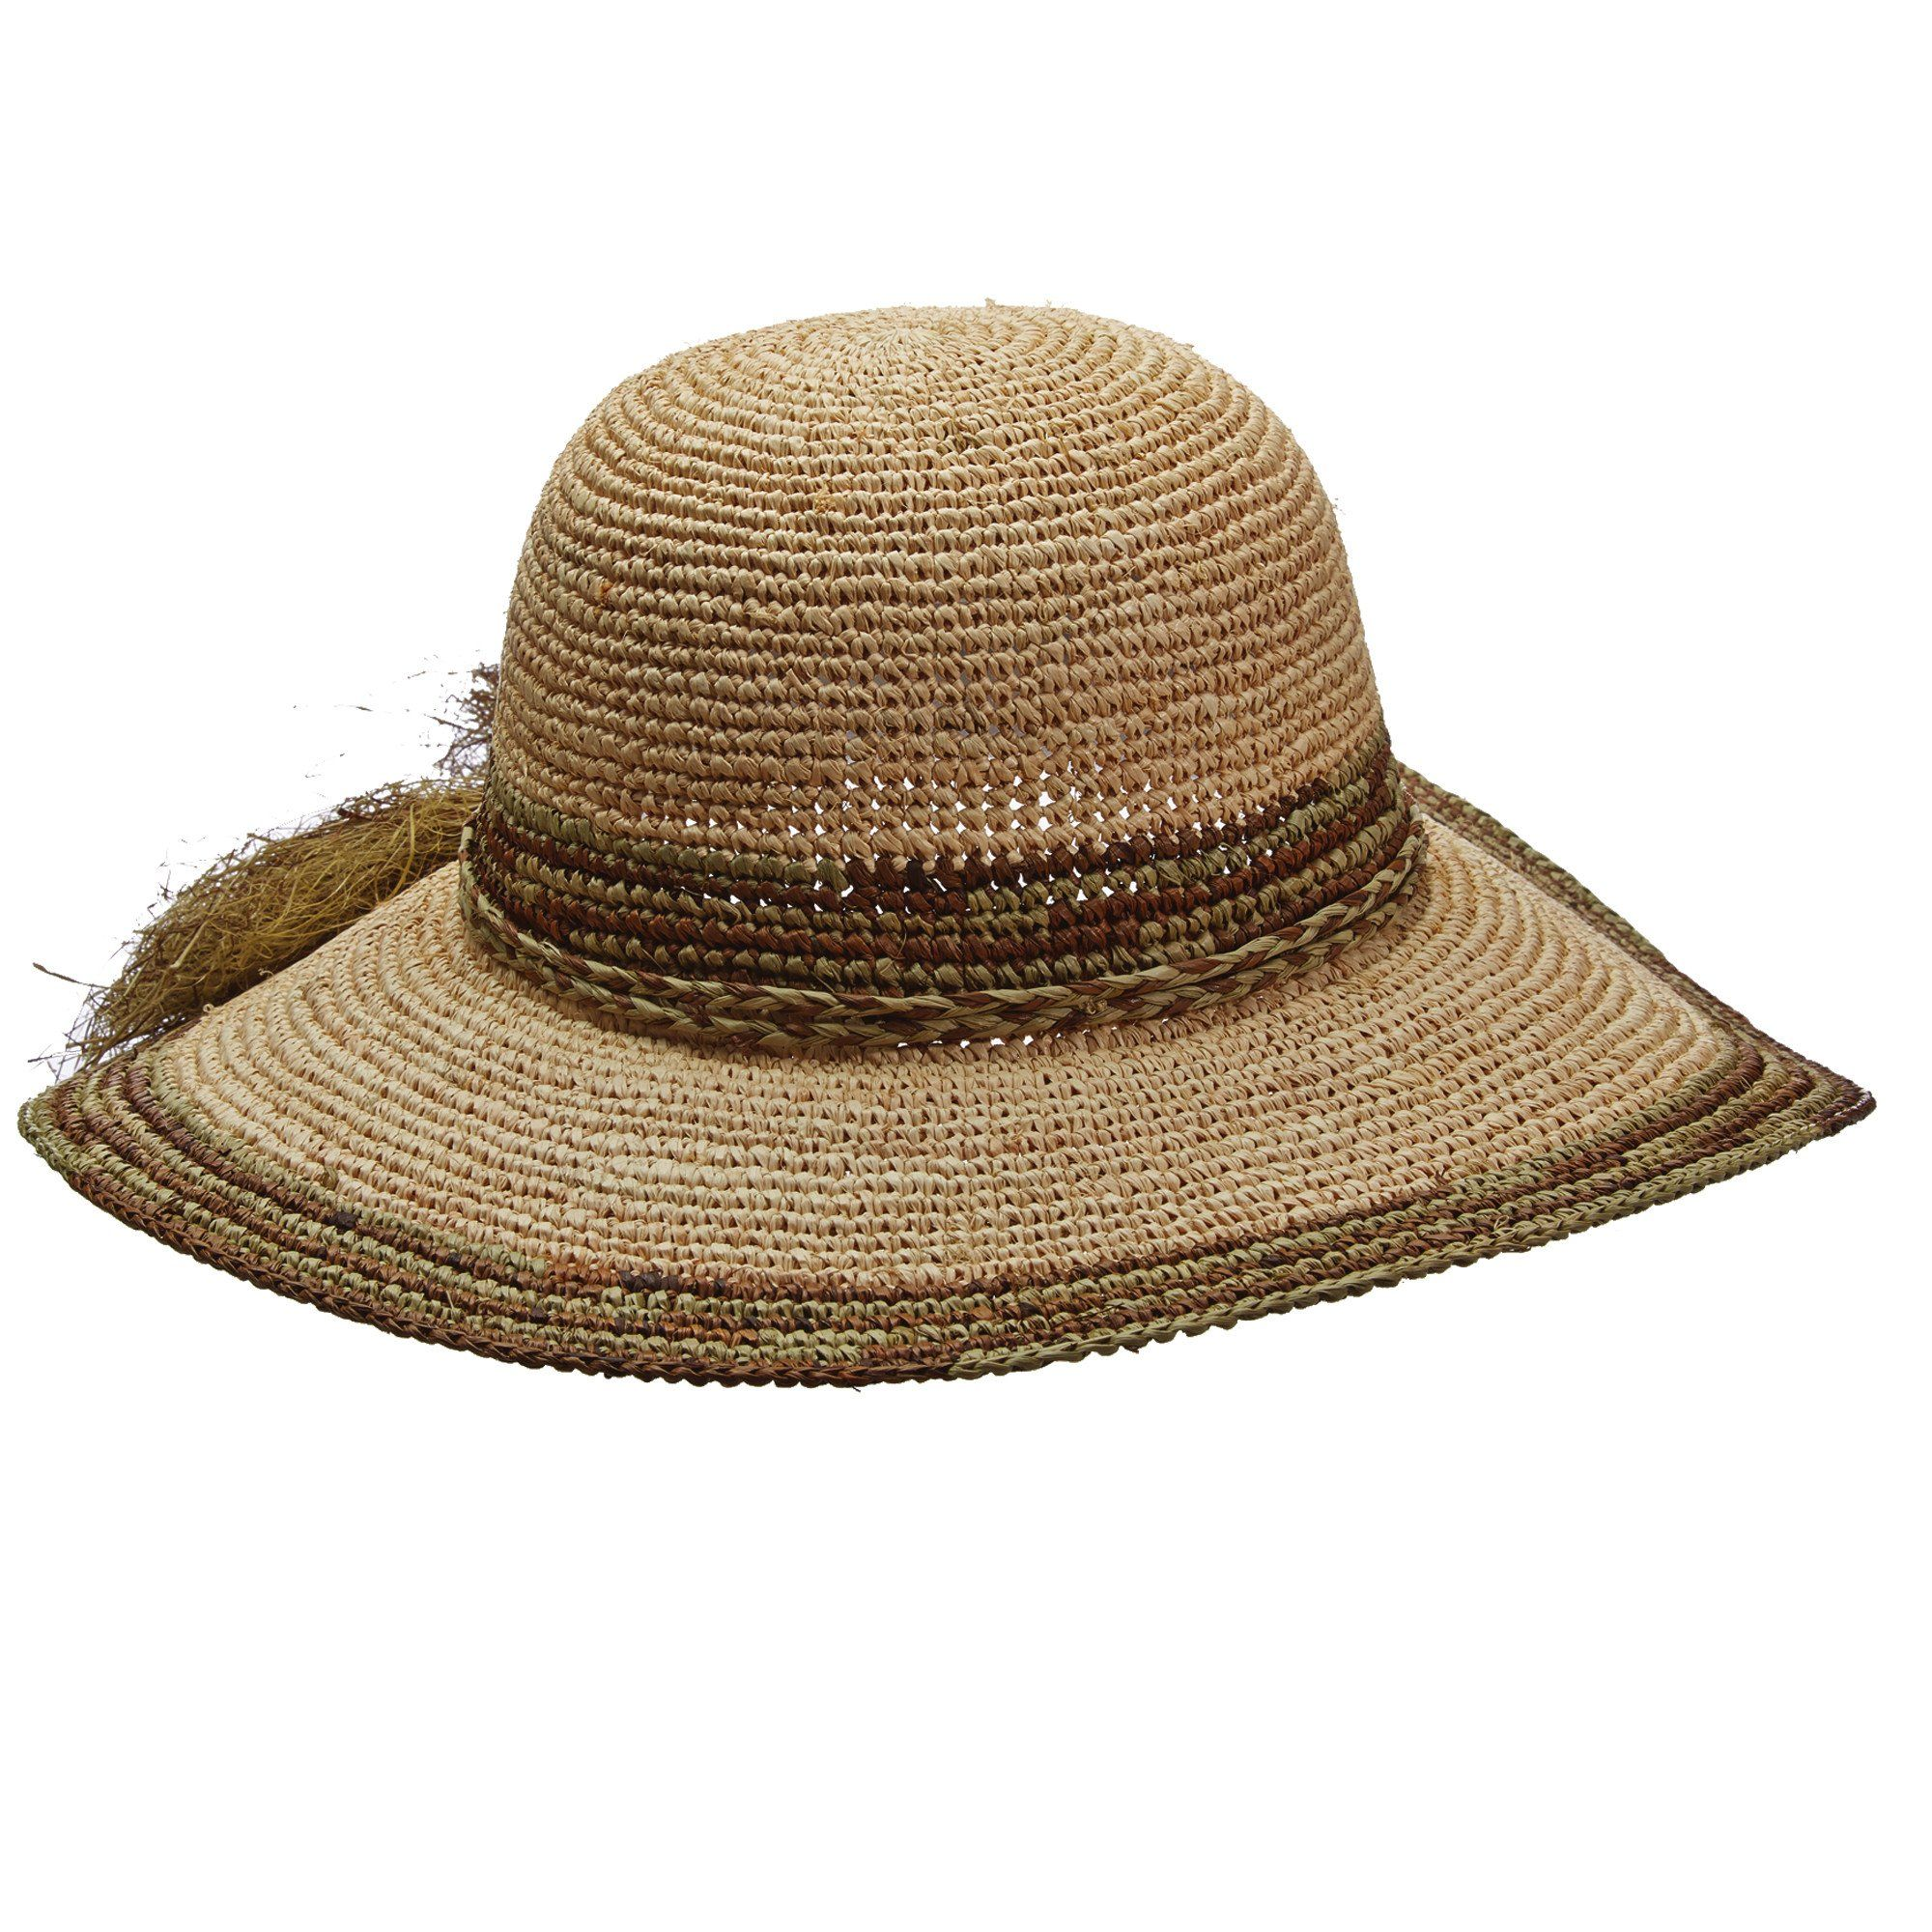 dc4b031a3 Hand Crocheted Raffia Floppy Hat by Callanan in 2019 | Products ...